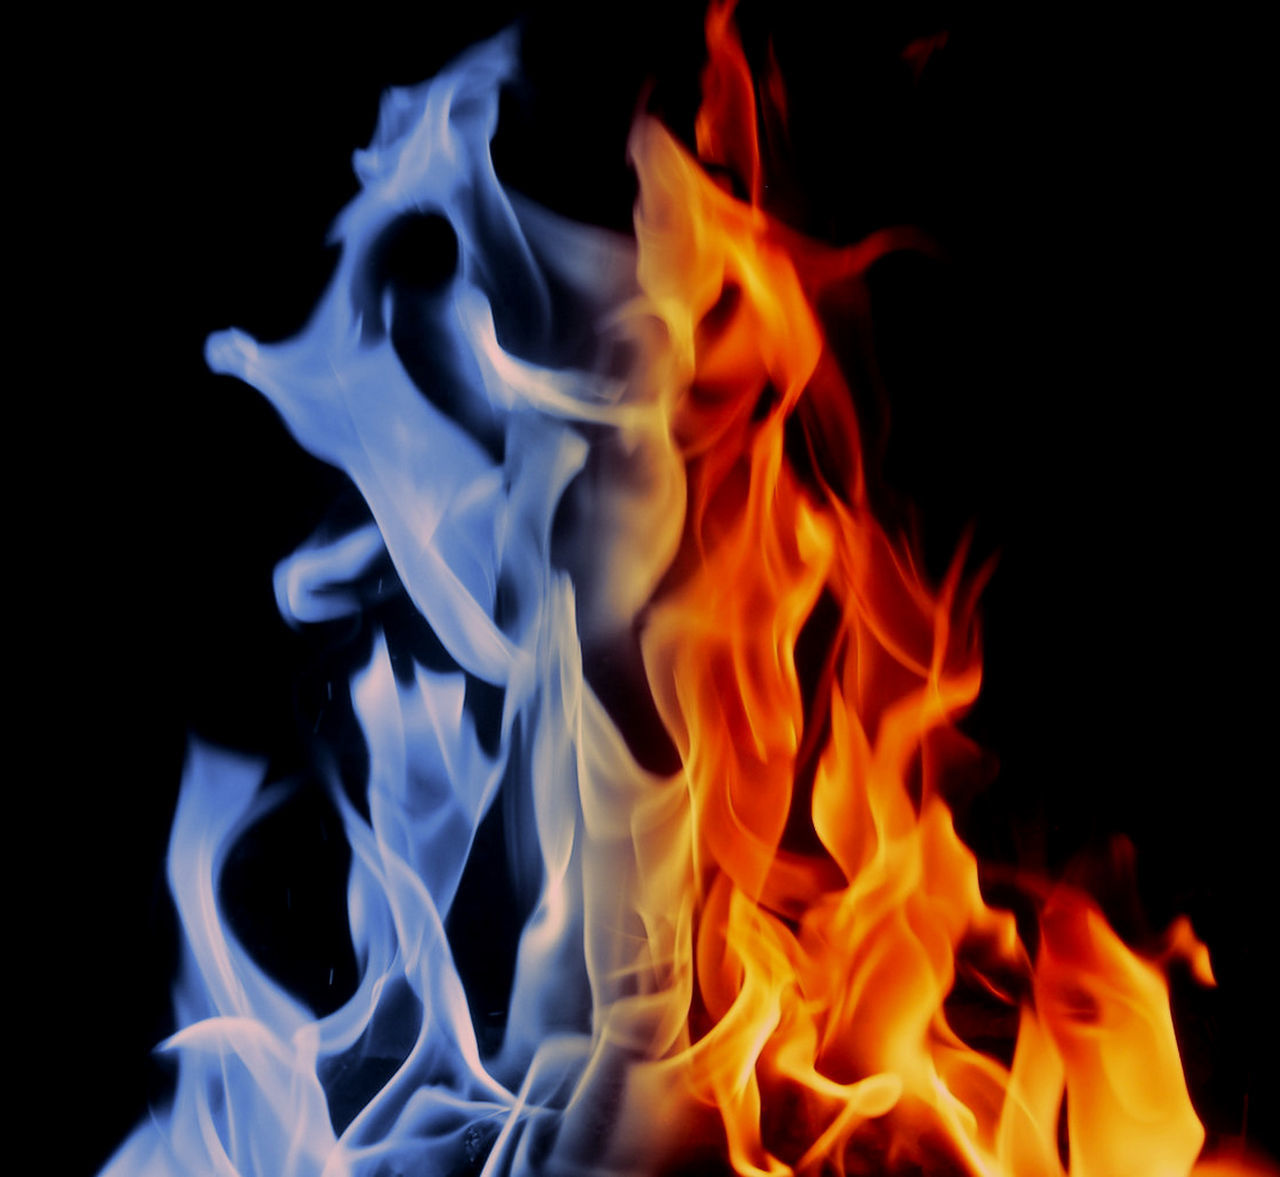 burning, black background, flame, close-up, no people, night, motion, heat - temperature, outdoors